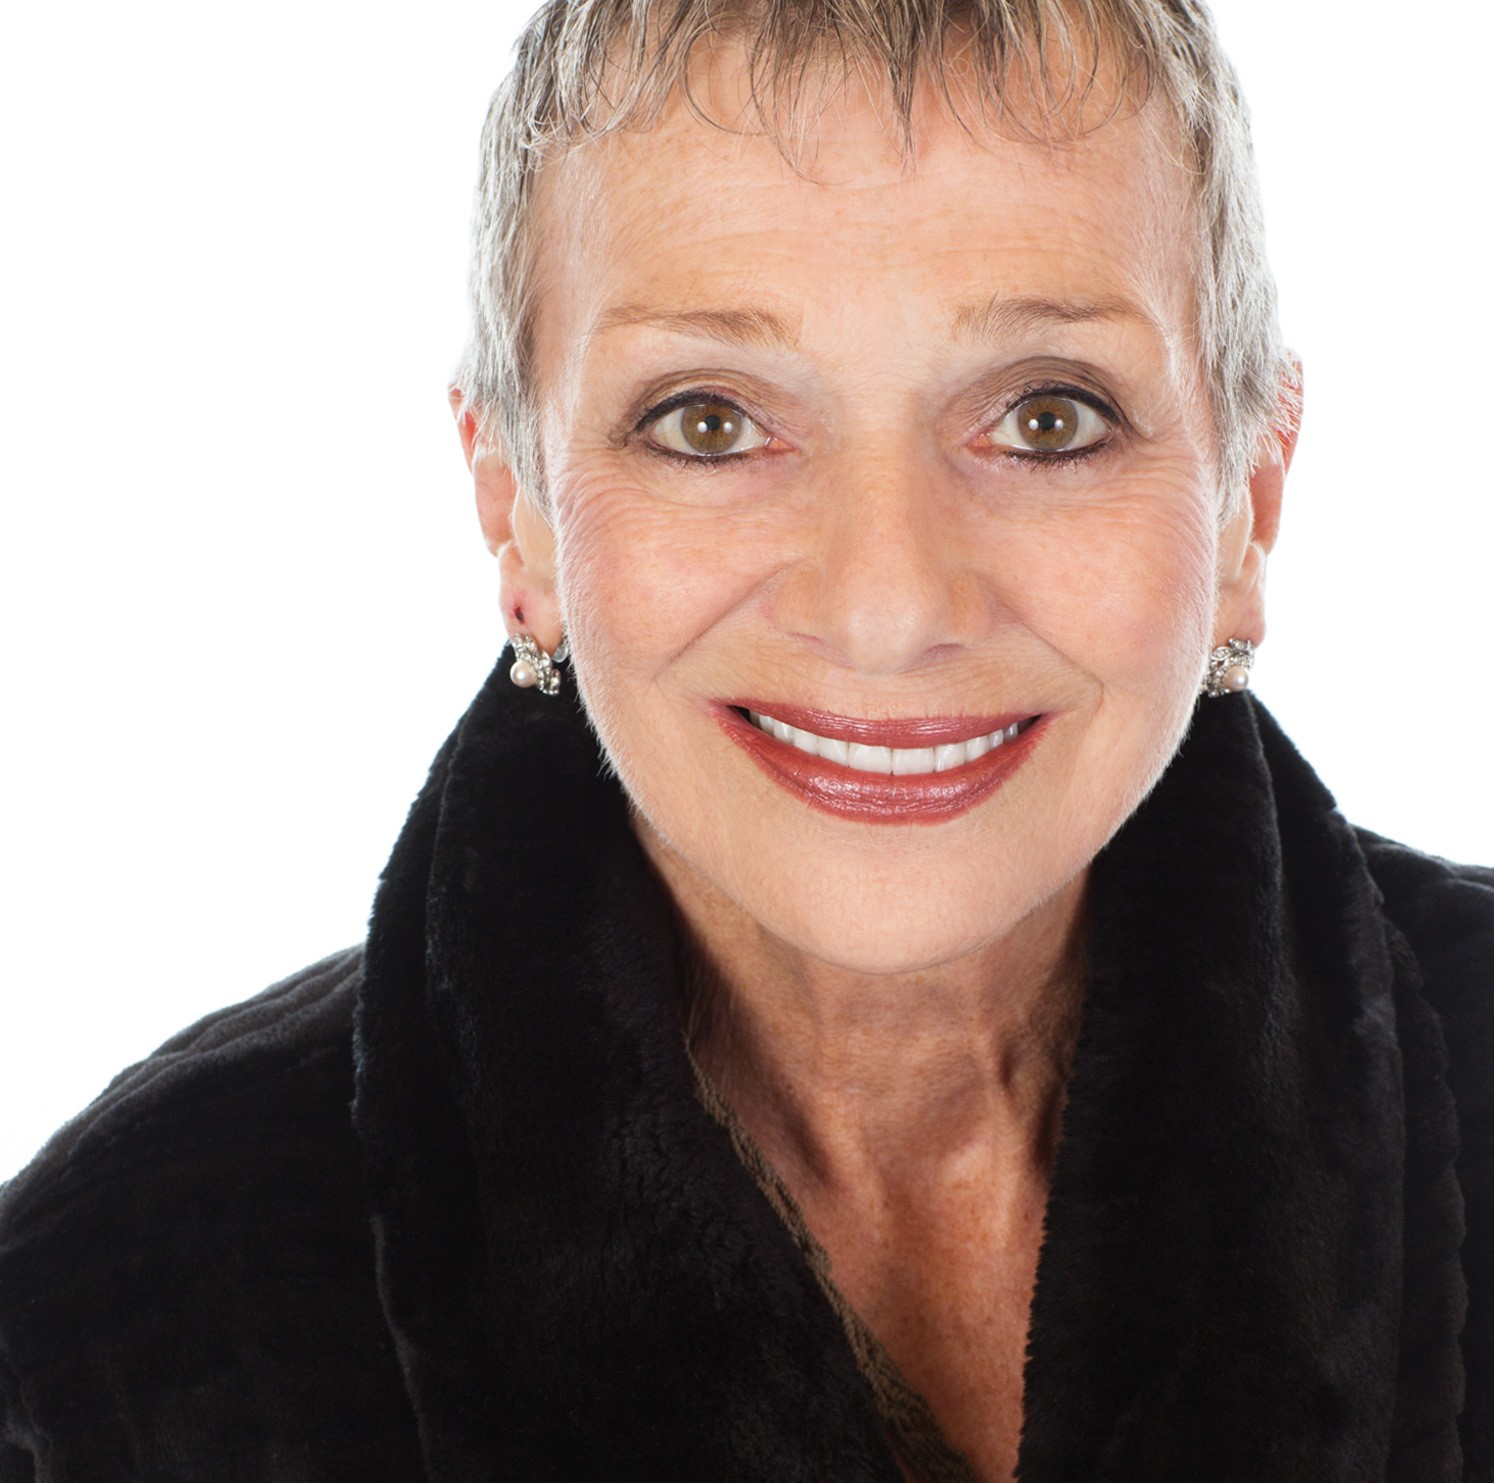 Blake's 7 star Jacqueline Pearce dies at 74